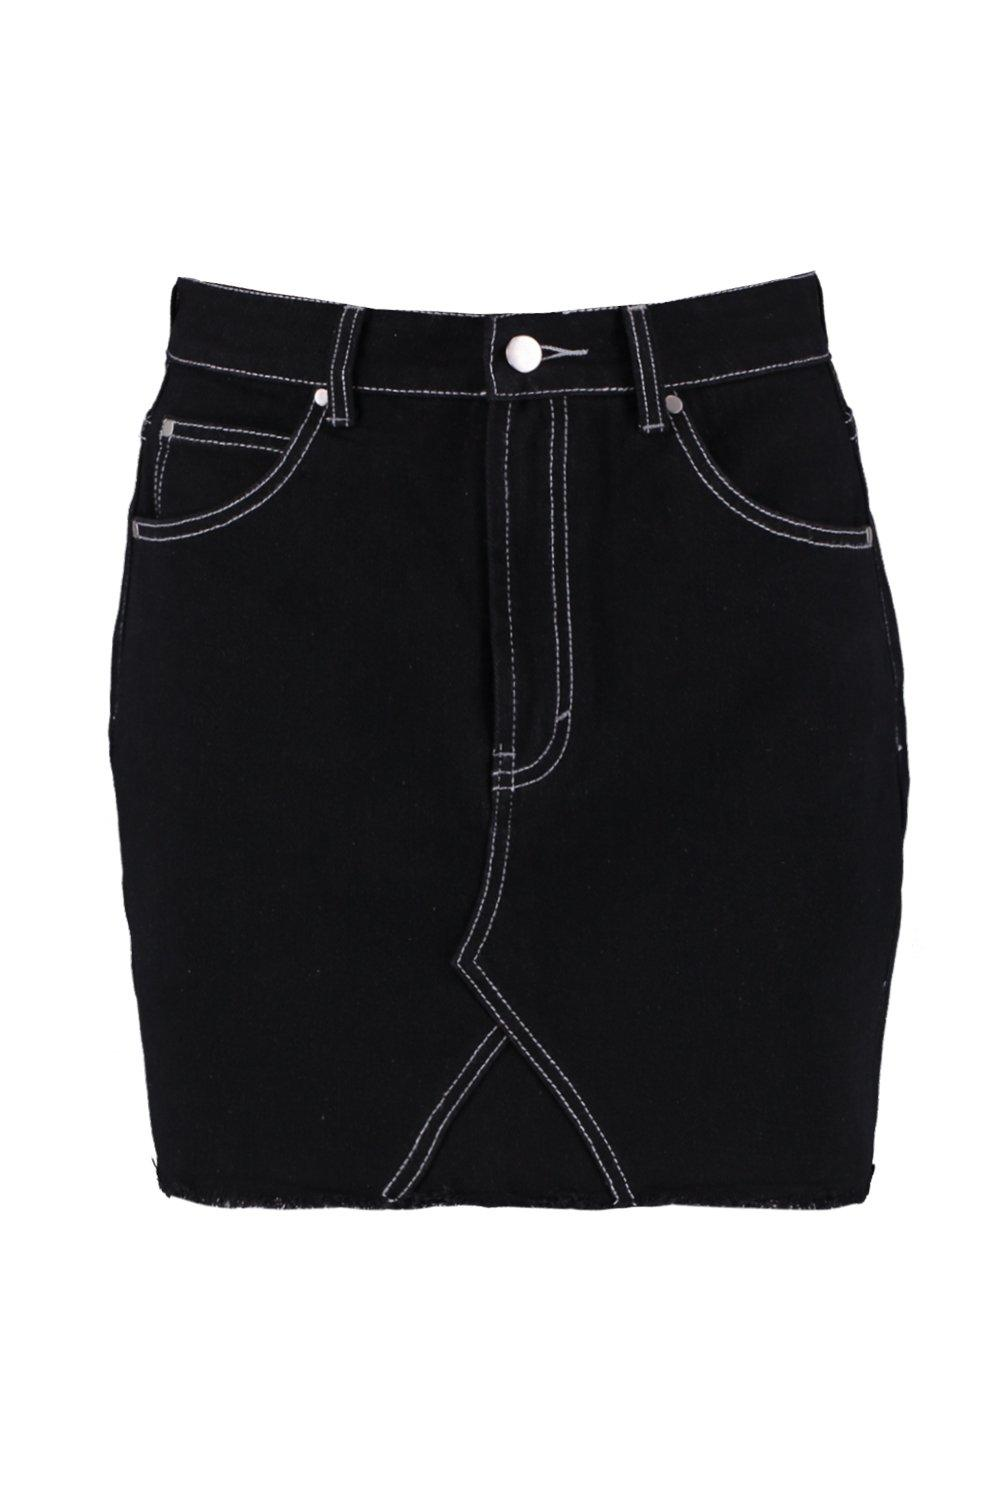 Denim Skirt Contrast Contrast Stitch Stitch black Denim 4SUa4qRWI